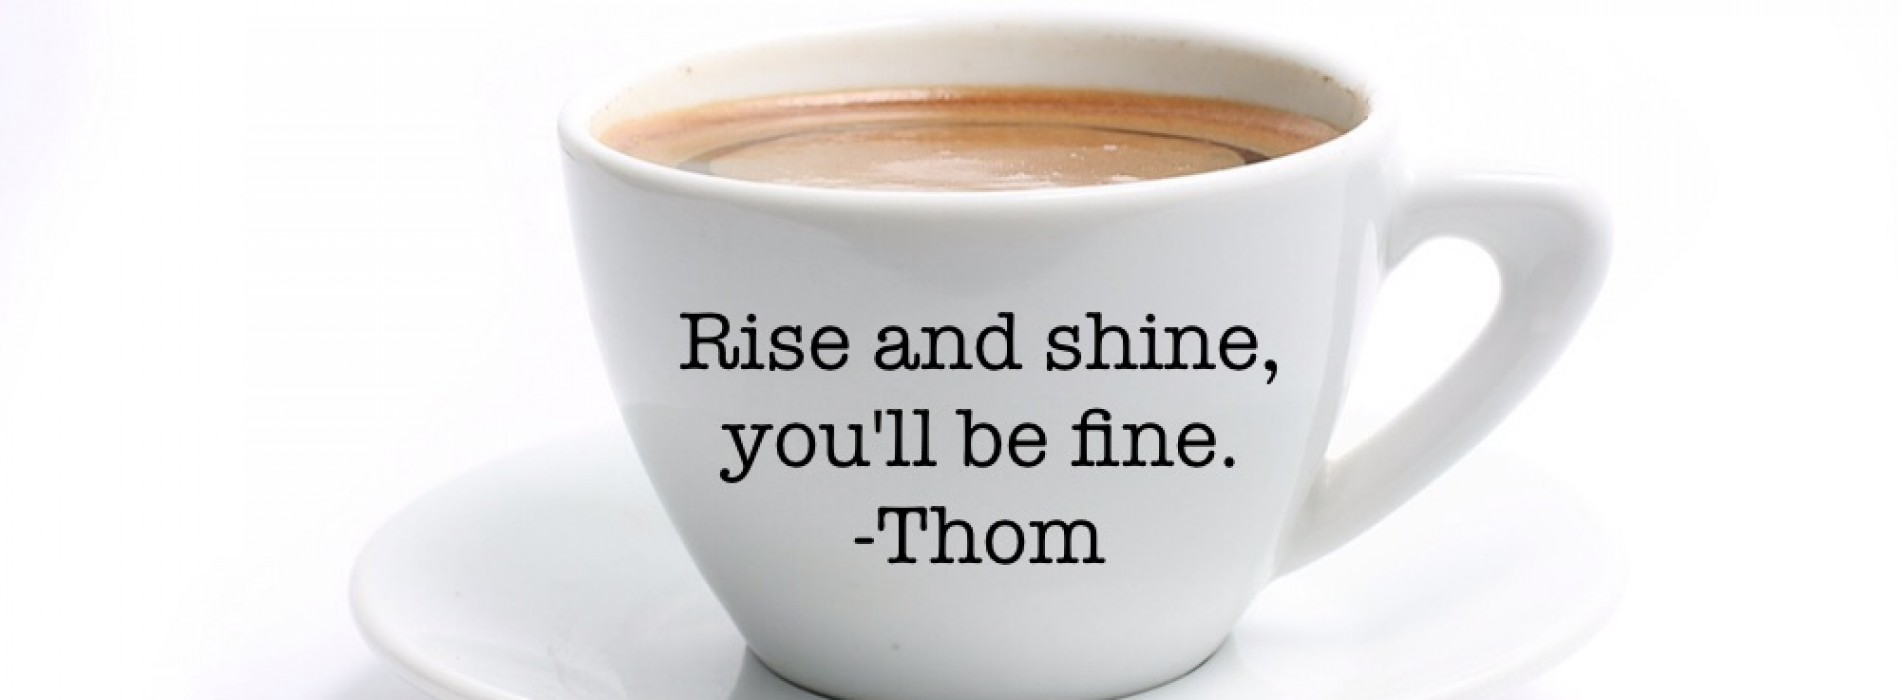 """Motivational Monday – """"Rise and shine, you'll be fine."""""""